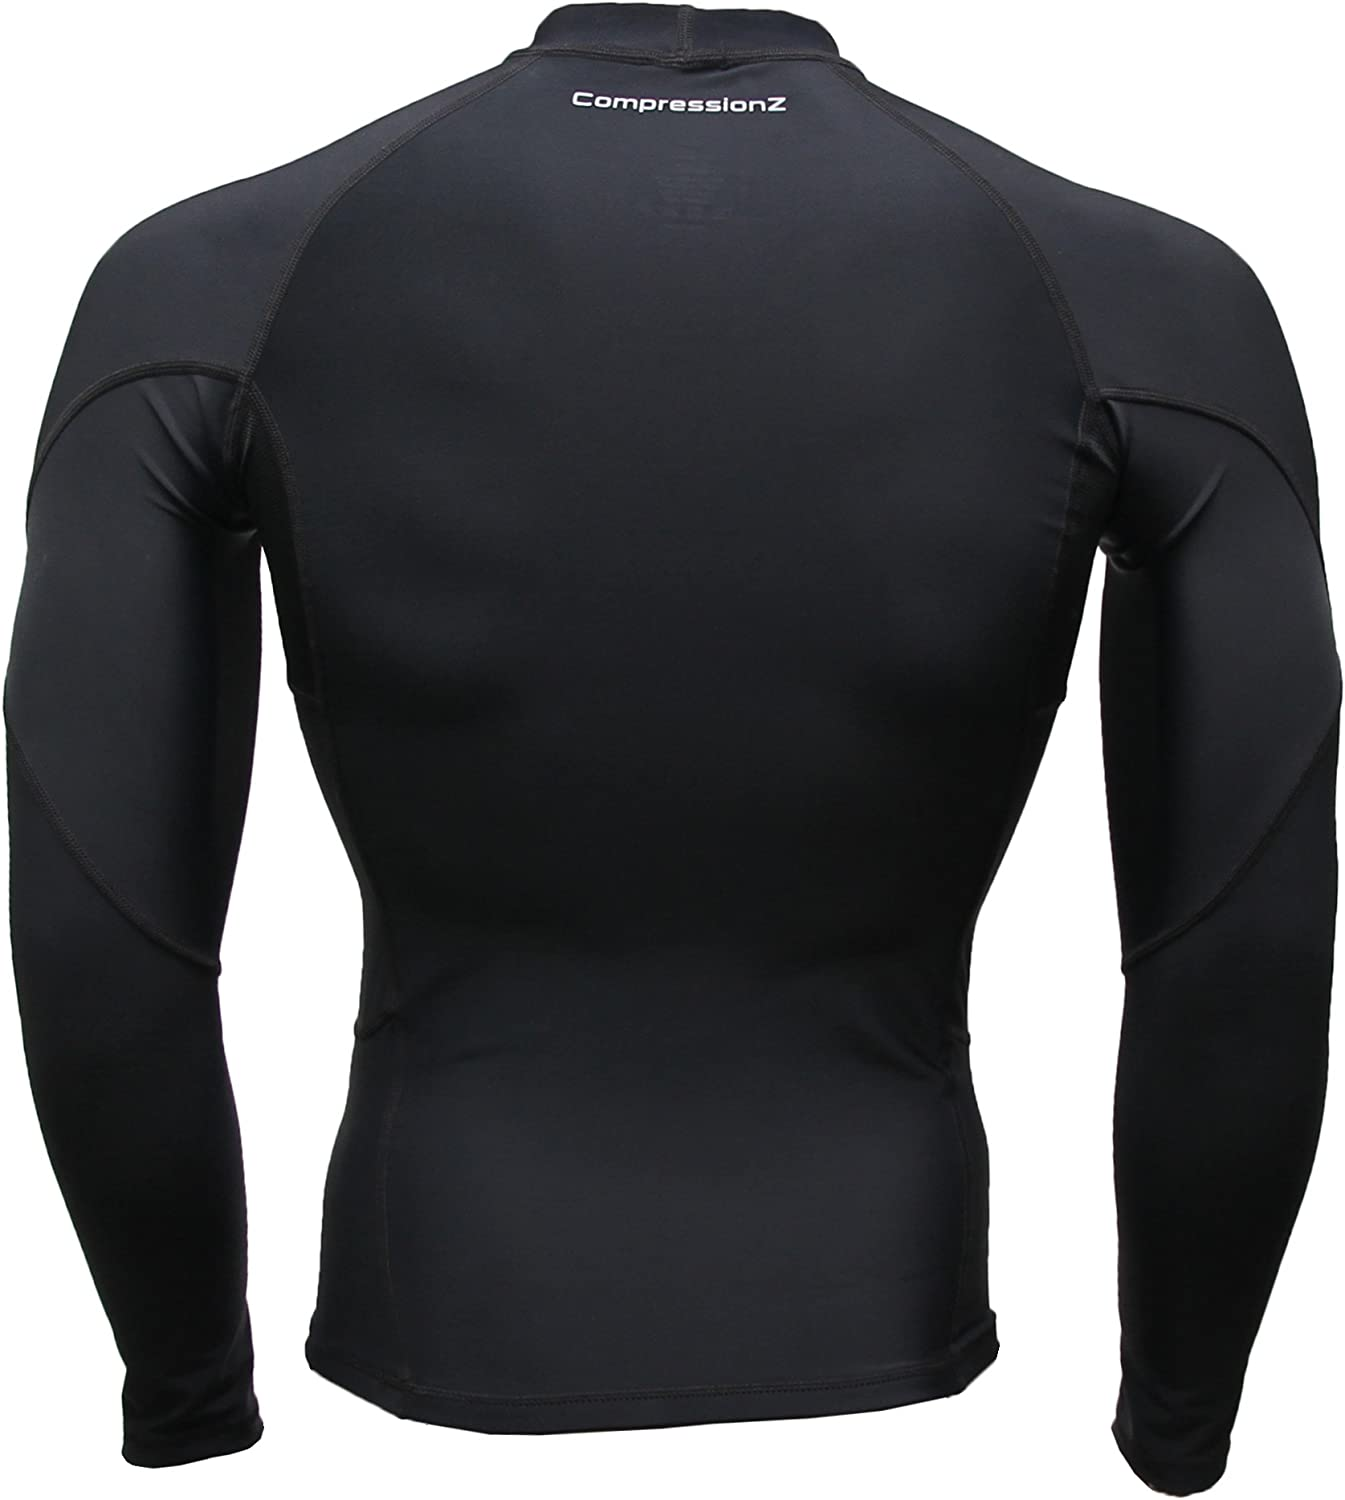 New Mens Compression Armour Base layer Top Skin Fit Shirt Leggings set